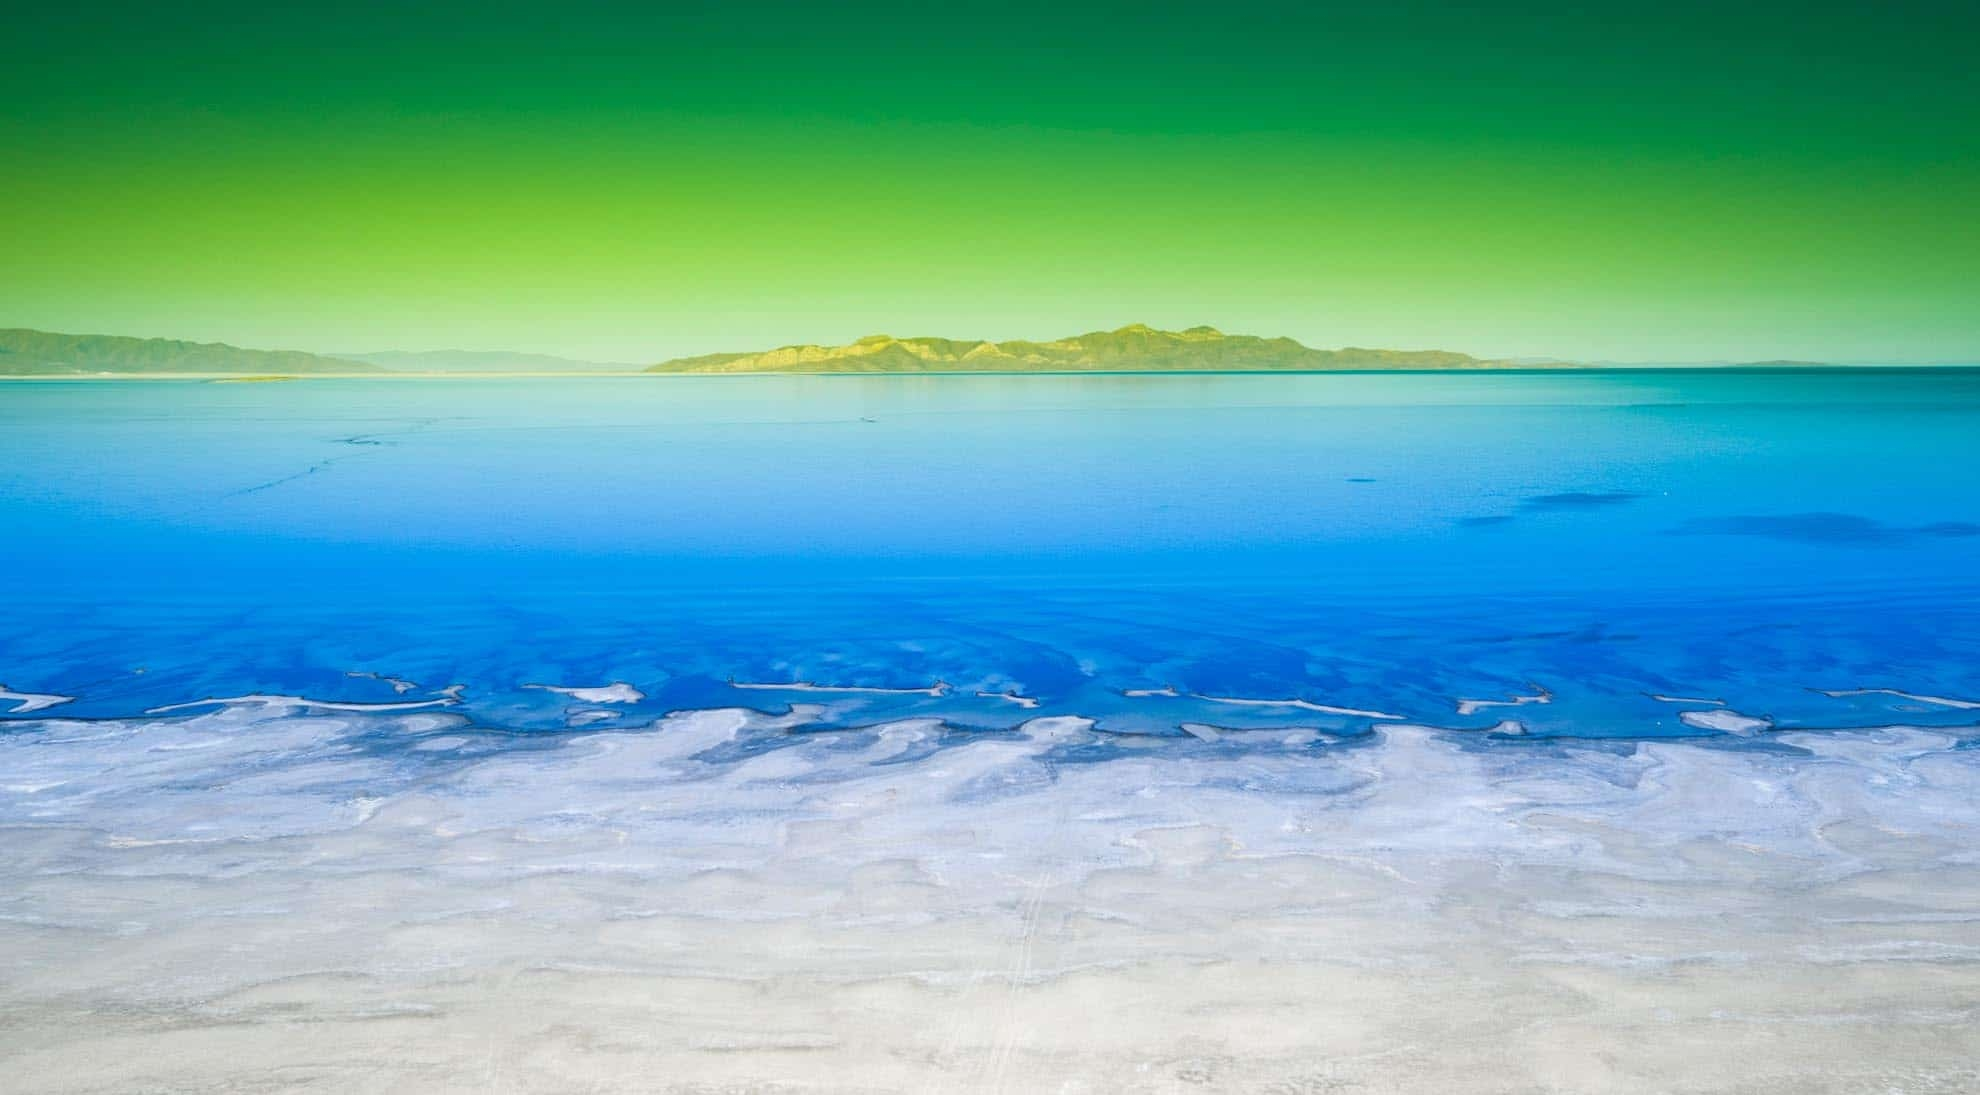 Drone Photograph of The Great Salt Lake with a green sky